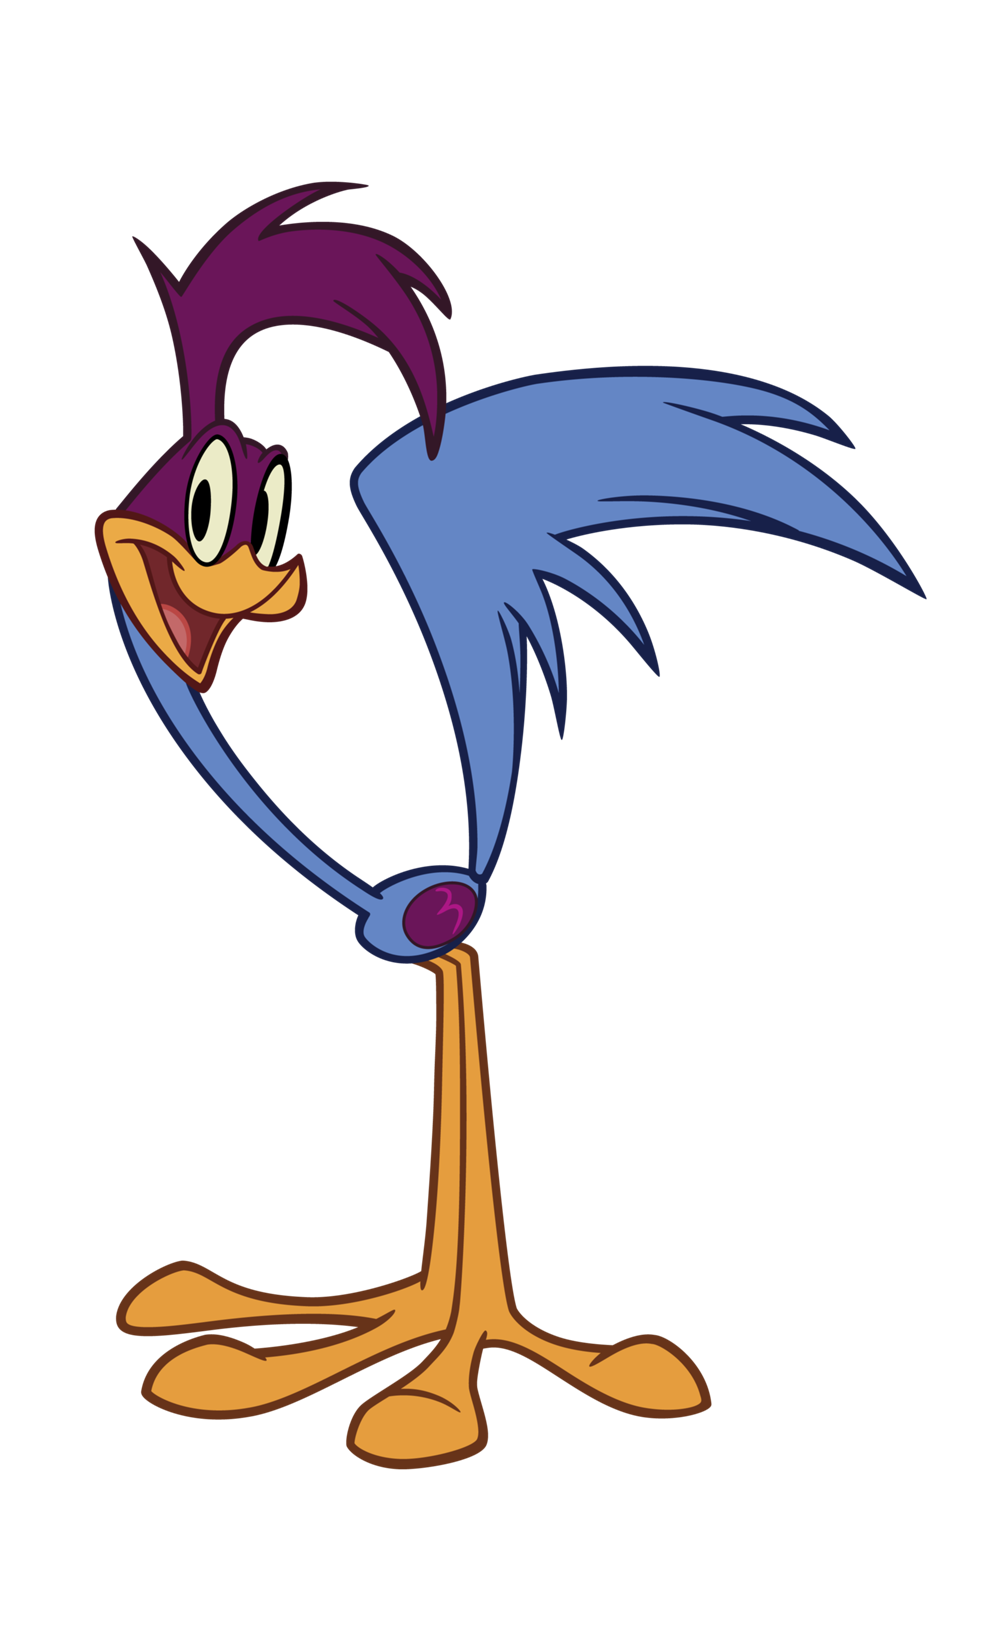 Road runner bird png. Image the new looney